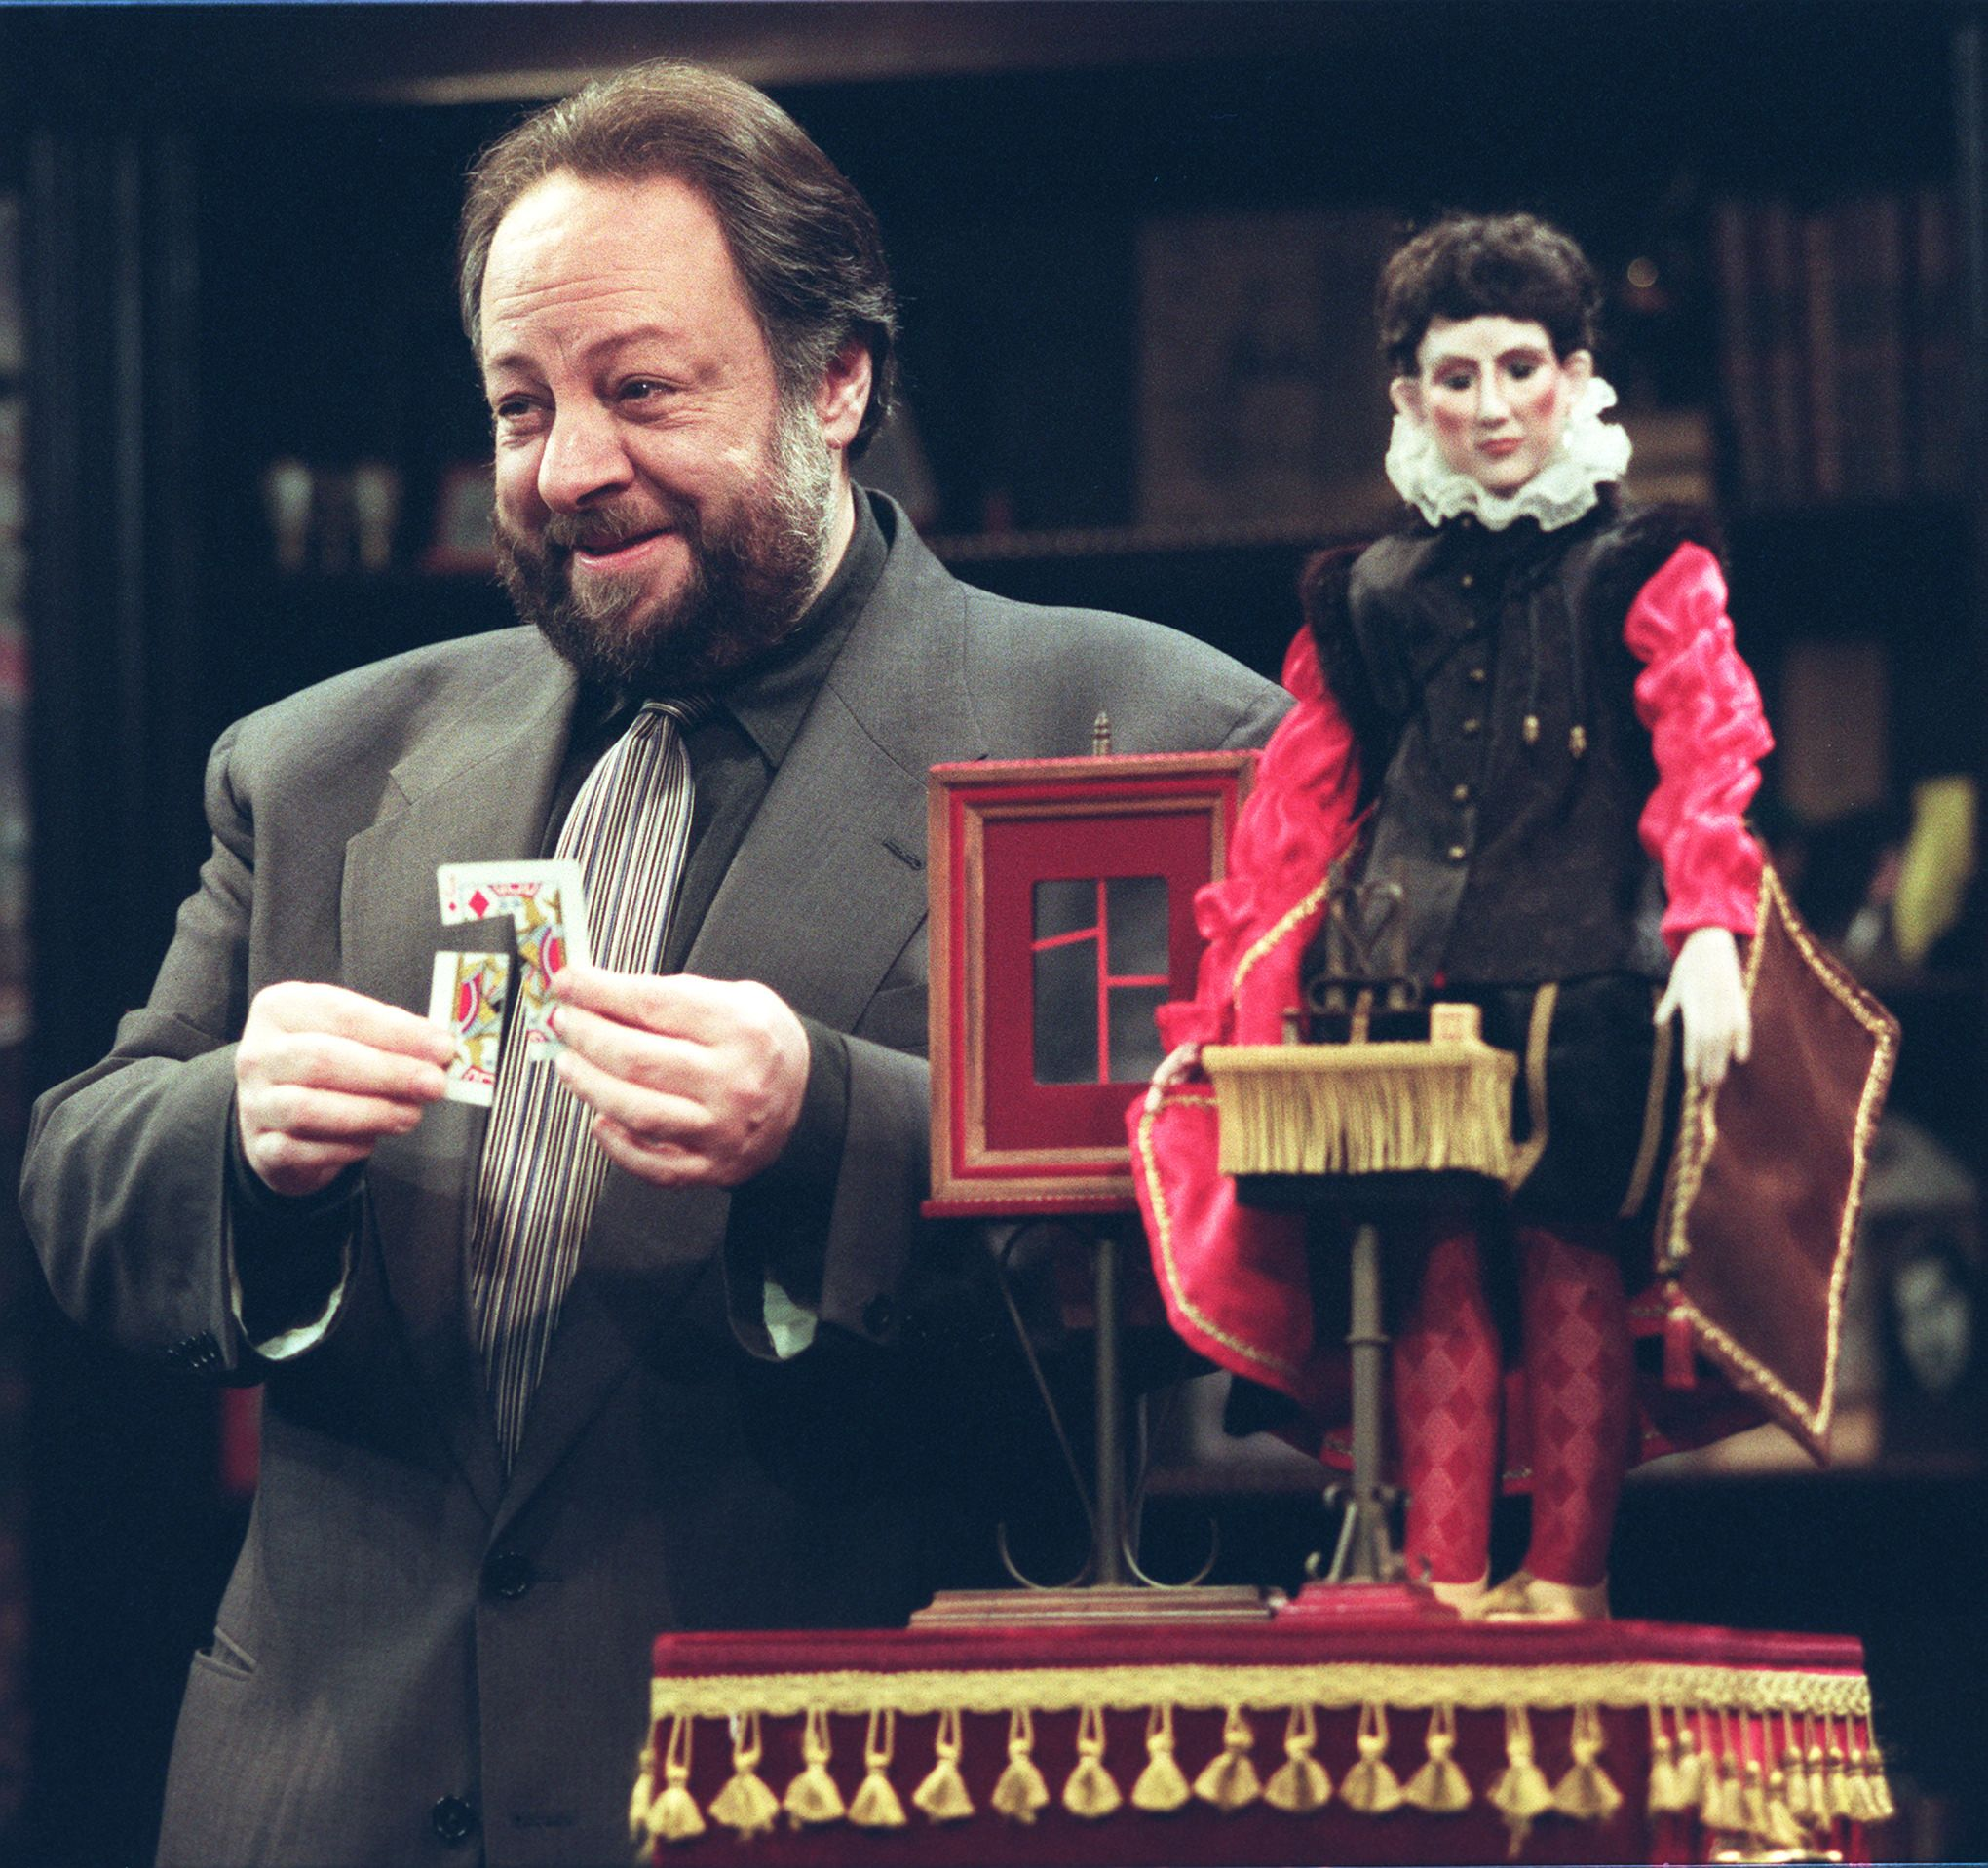 """This photo shows Ricky Jay during a rehearsal for his show, """"Ricky Jay & His 52 Assistants"""" at the Tiffany Theatre in West Los Angeles."""